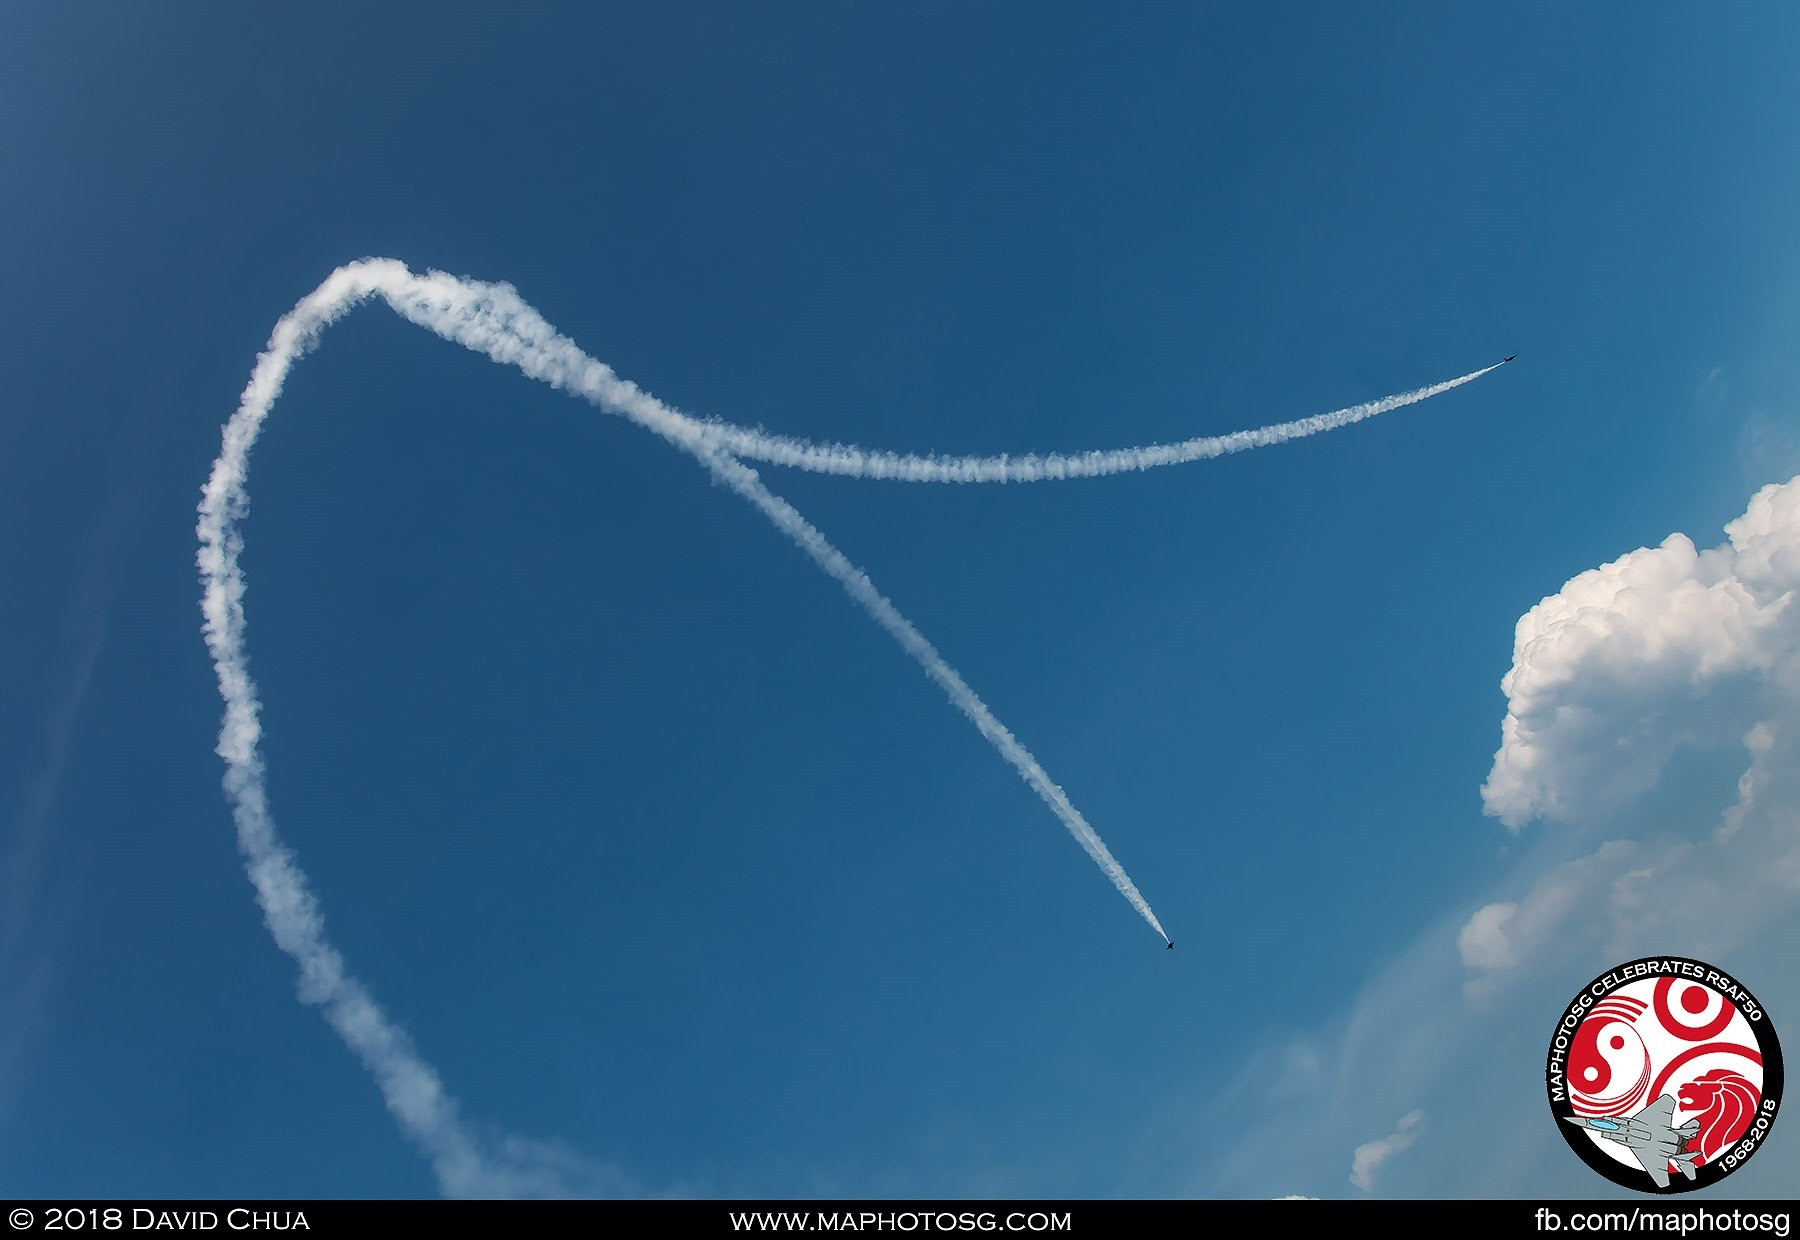 Vertical Split – Trailing smoke. the two F-16Cs pull straight up into the vertical and spilt at show centre and make a 180-degree turn.